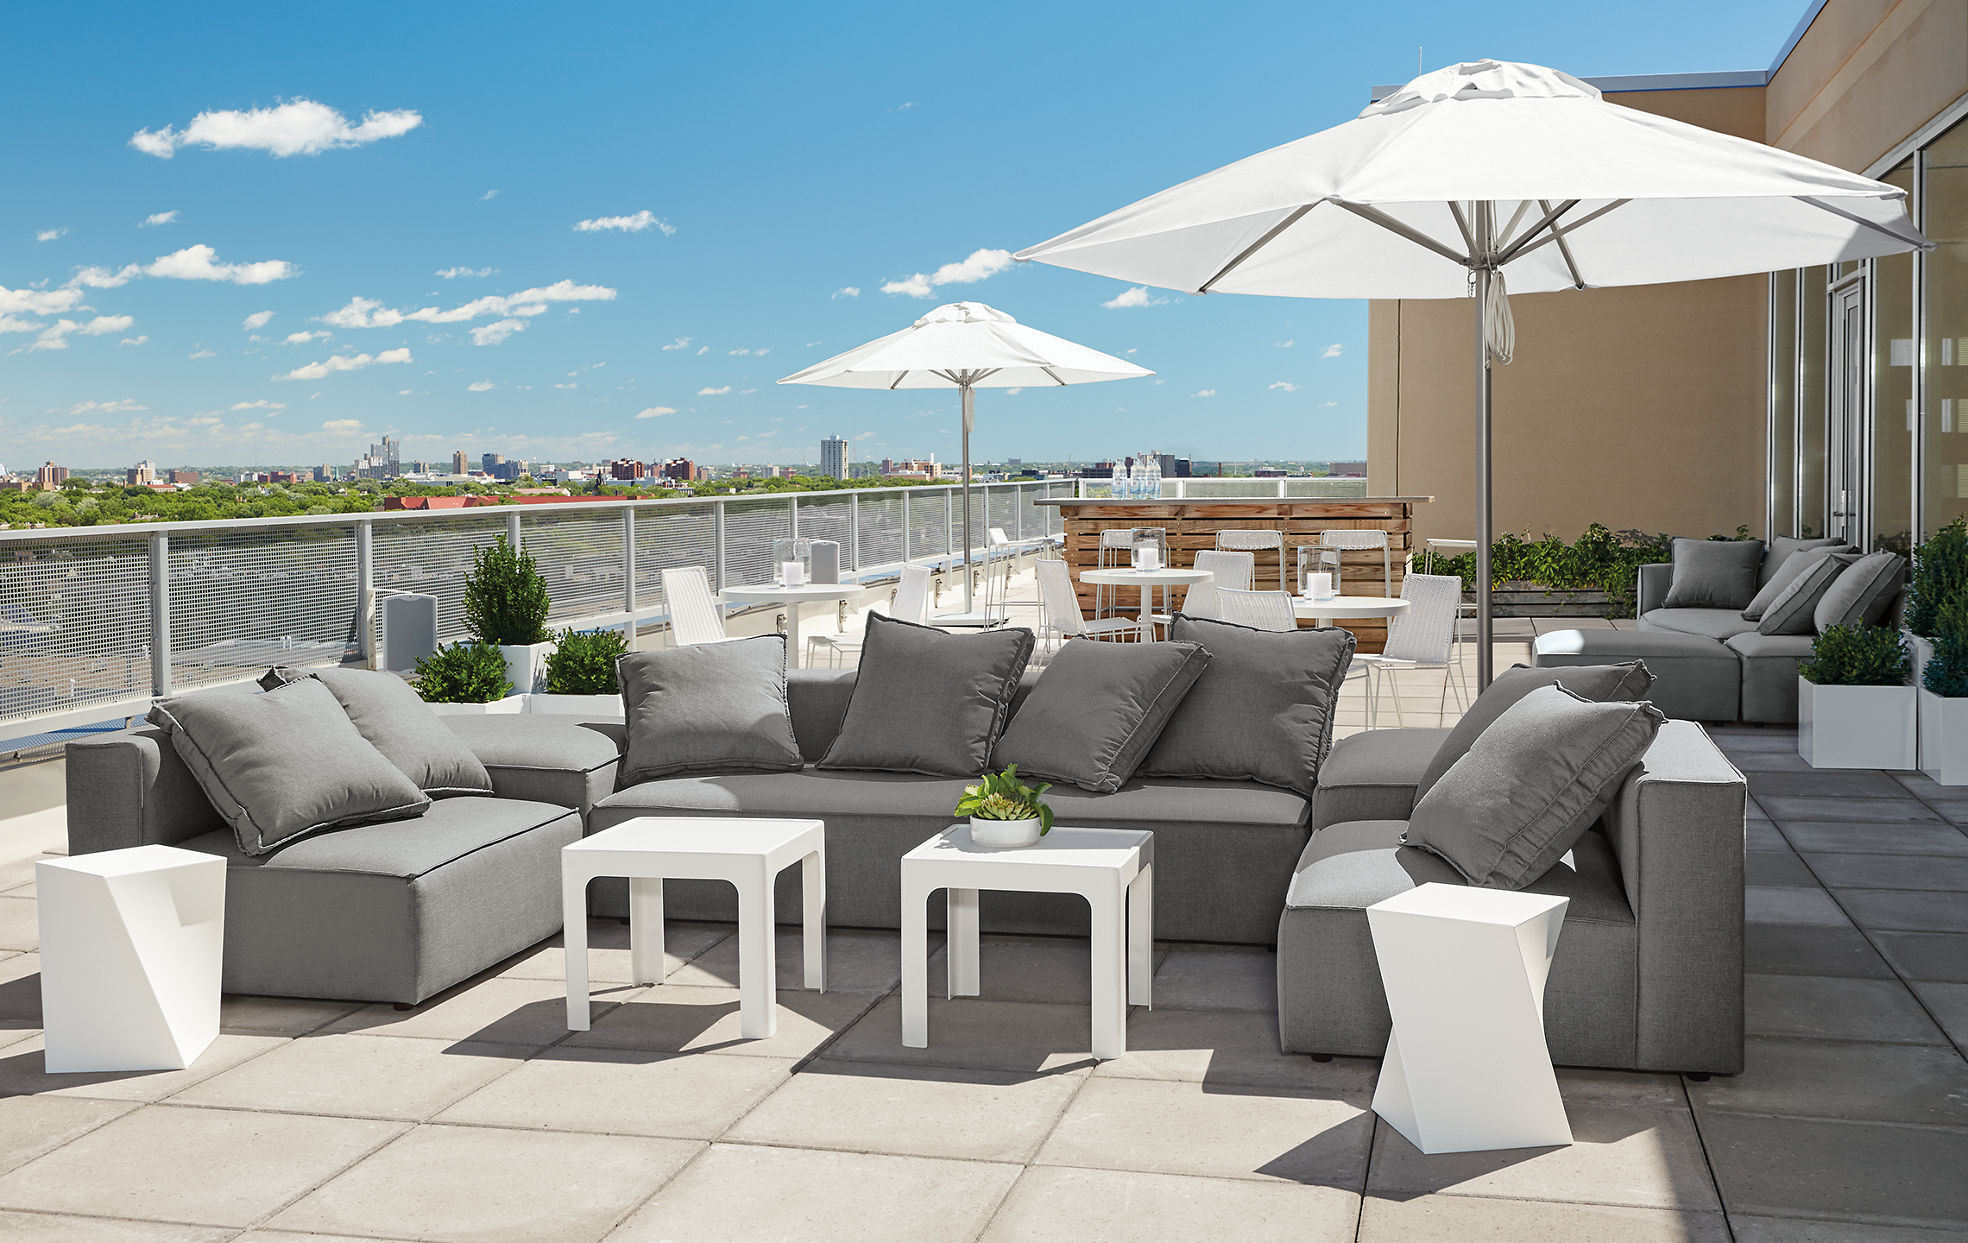 Best ideas about Modern Outdoor Furniture . Save or Pin Modern Outdoor Furniture Outdoor Room & Board Now.